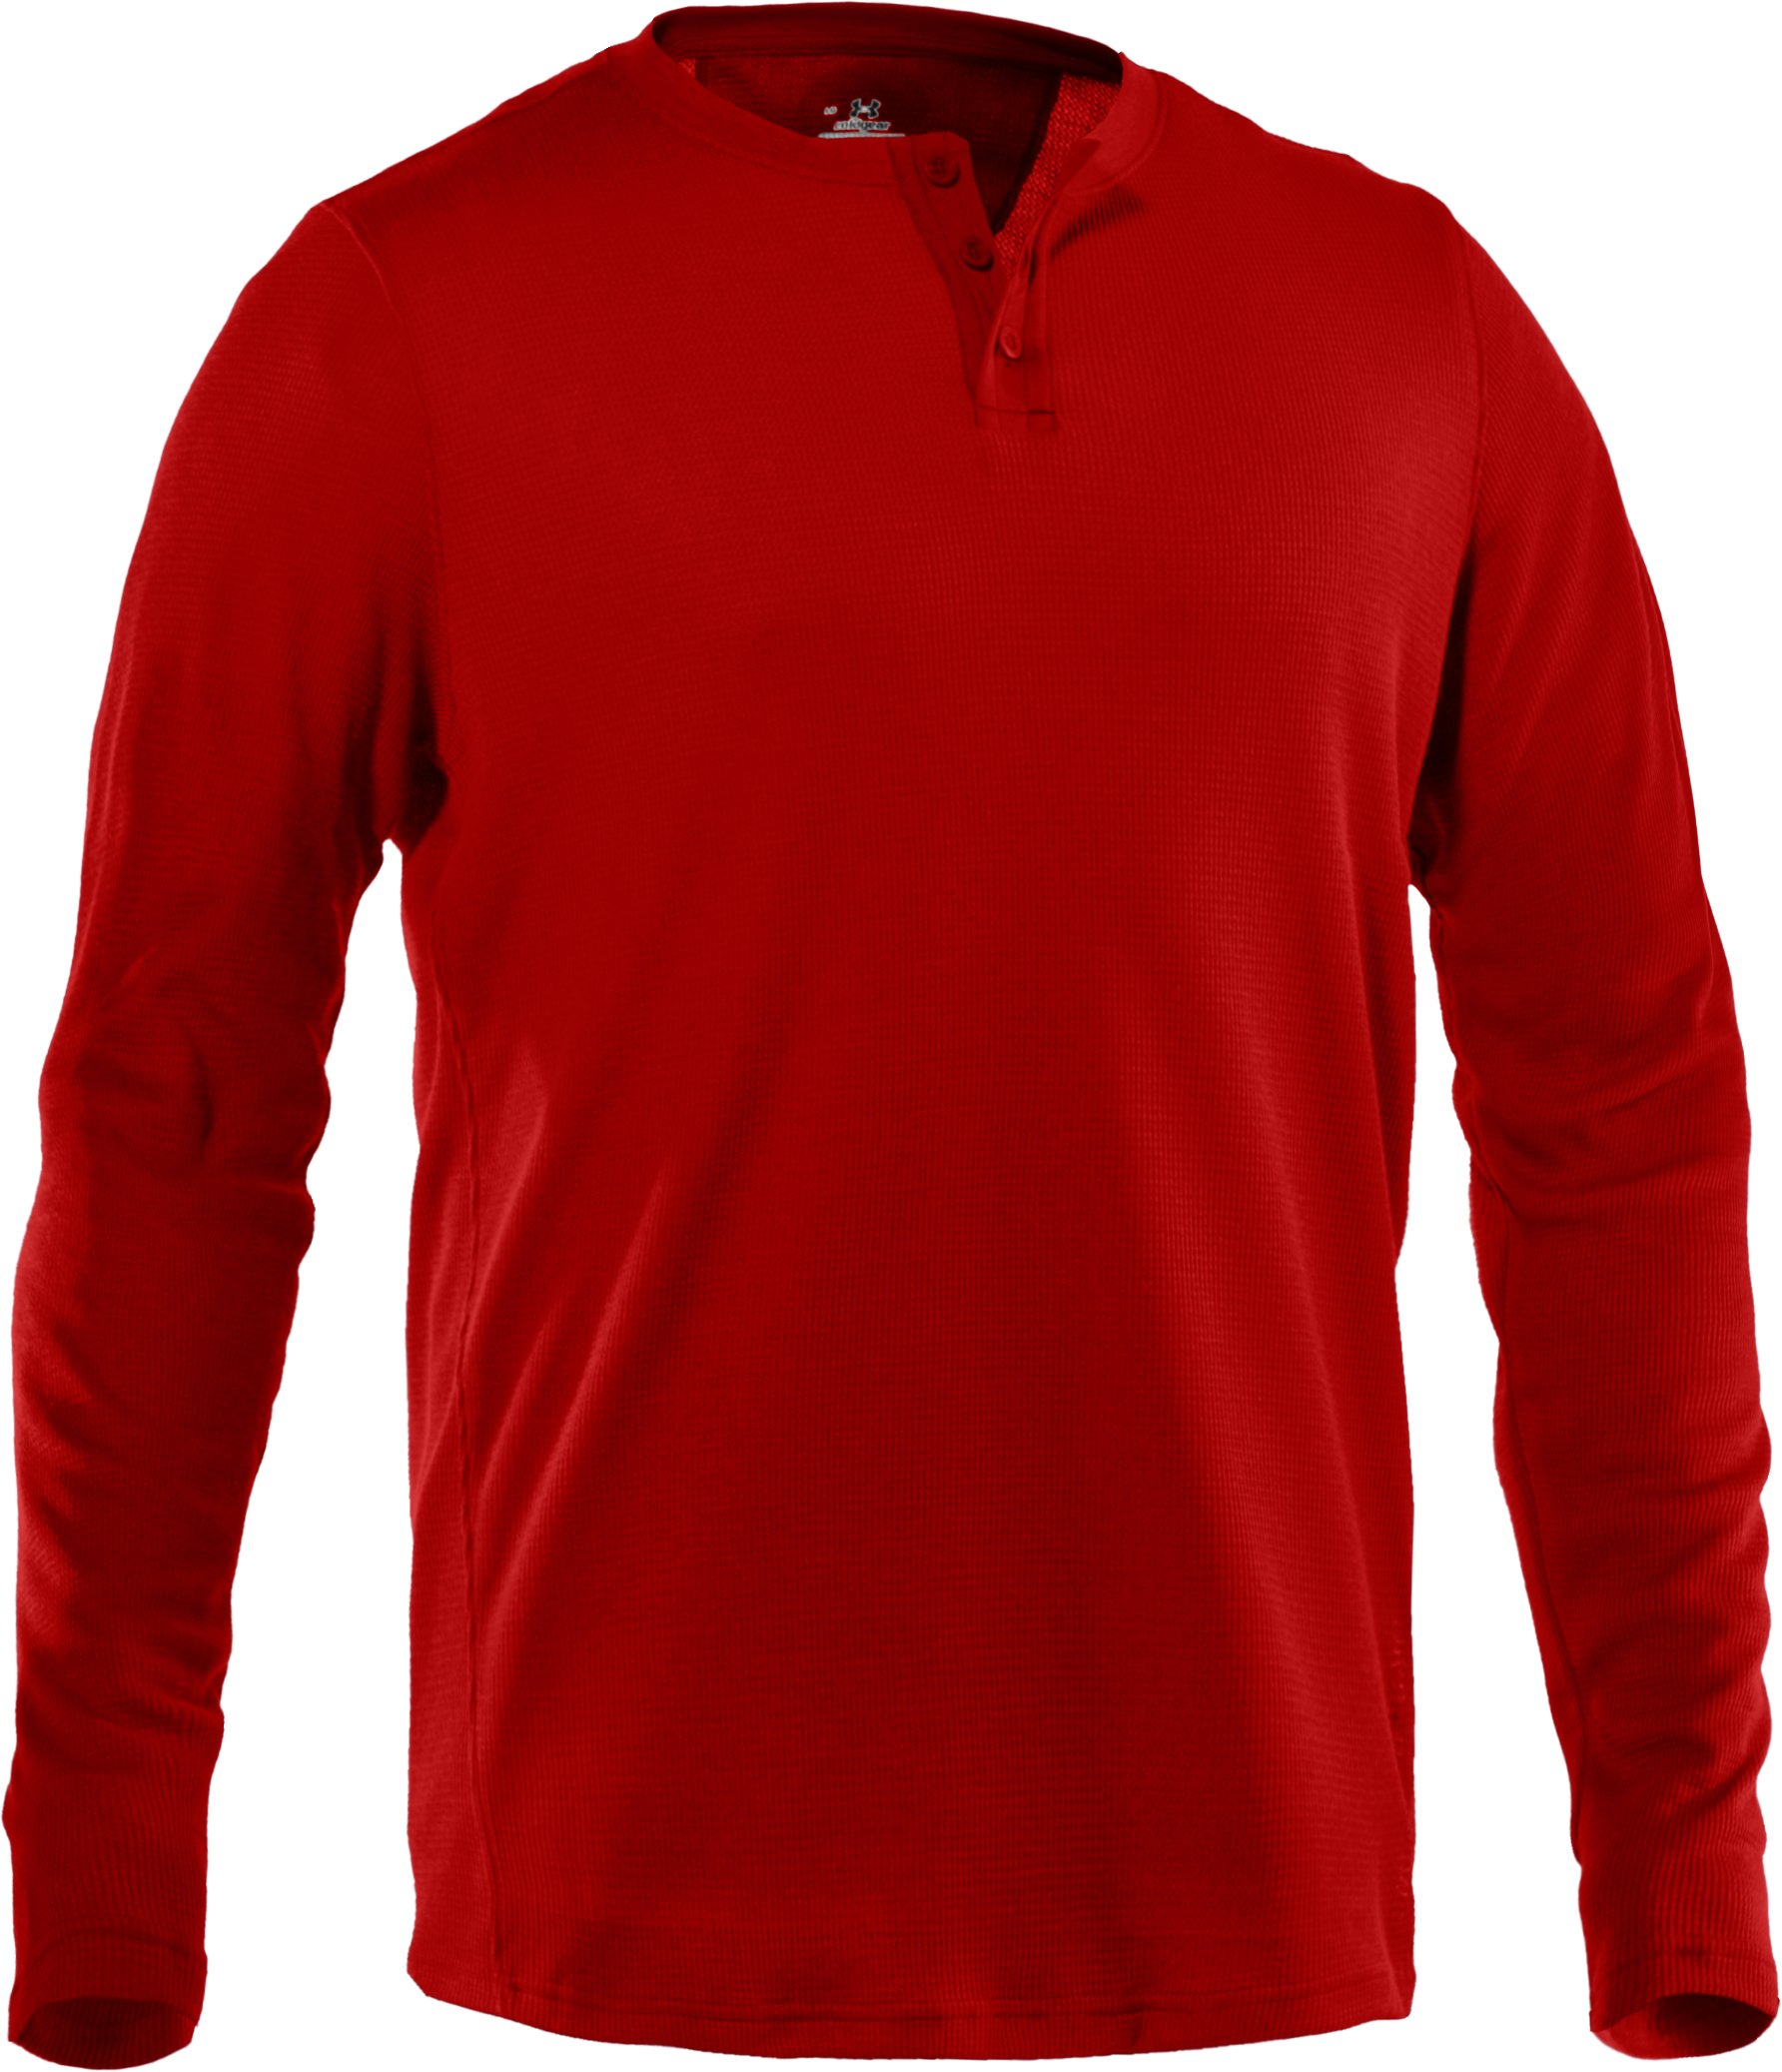 Men's Long Sleeve Waffle Henley Shirt, Fireball